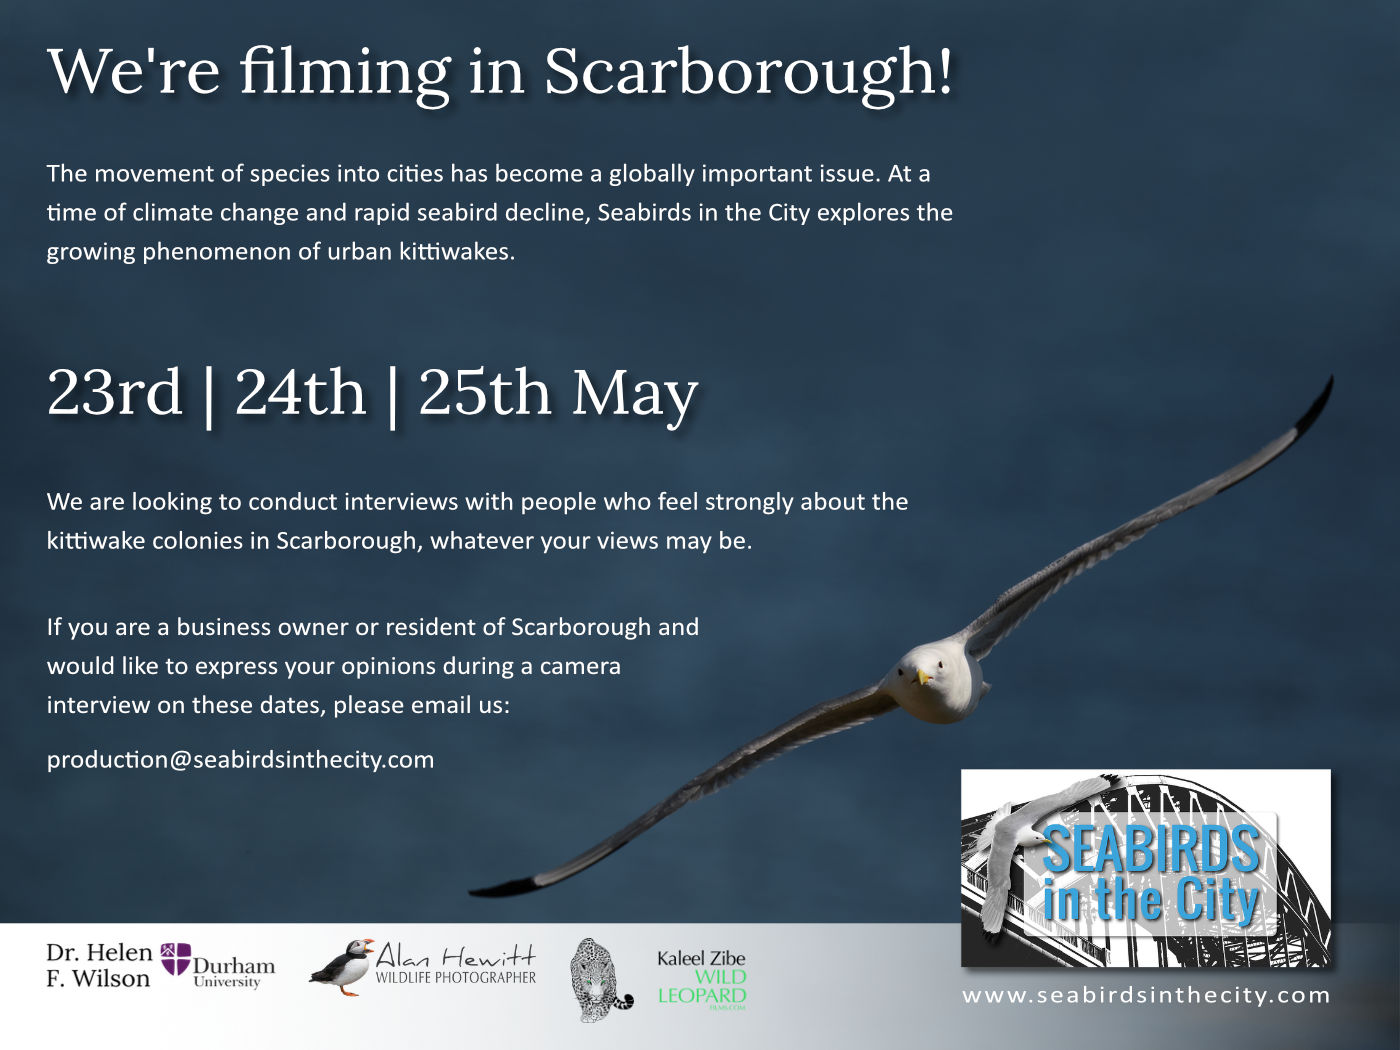 Seabirds in the City filming in Scarborough